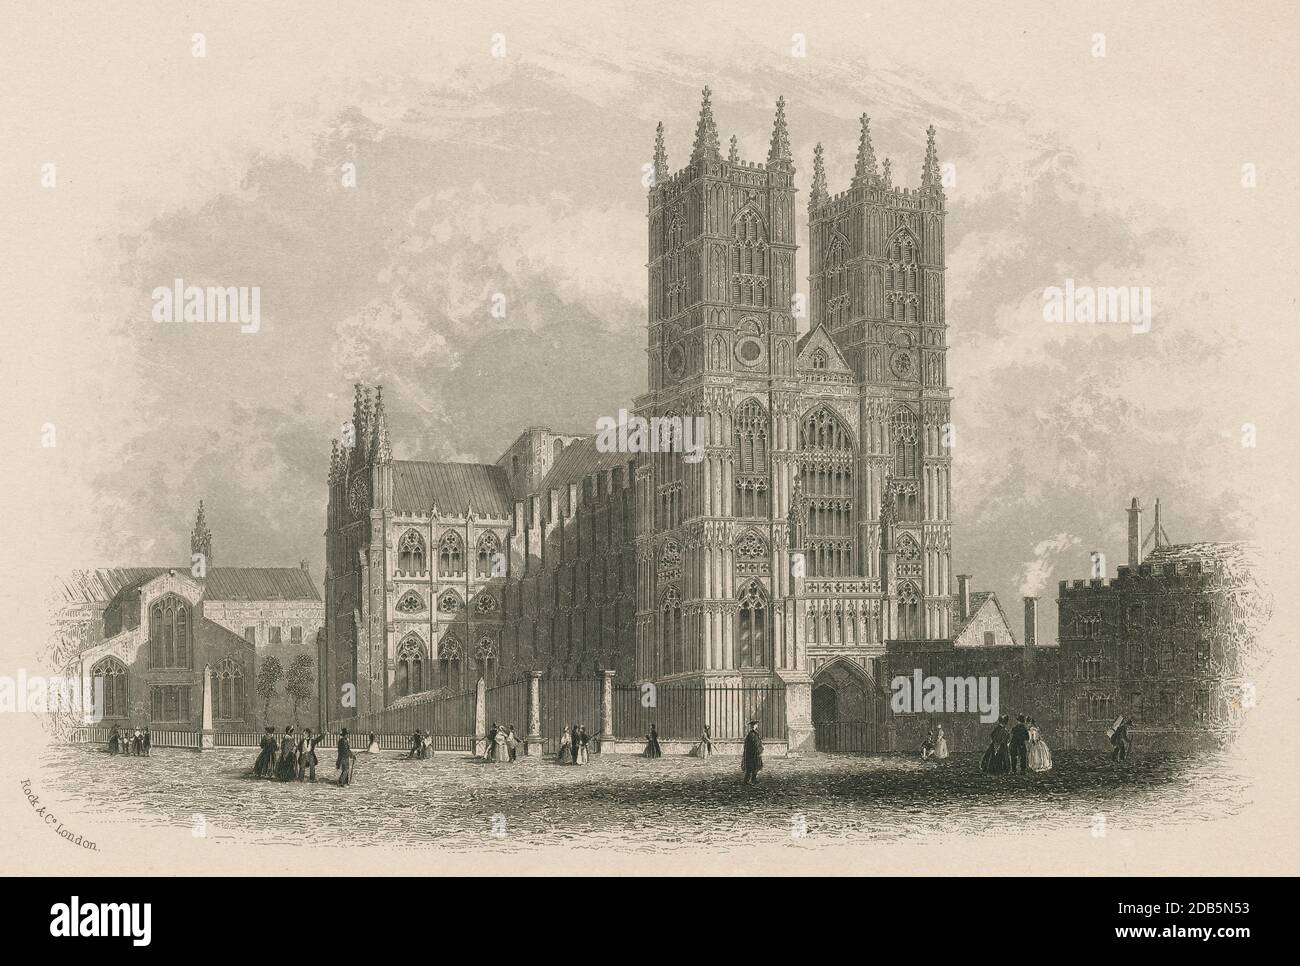 Antique c1850 engraving, Westminster Abbey. Westminster Abbey, formally titled the Collegiate Church of Saint Peter at Westminster, is a large, mainly Gothic abbey church in the City of Westminster, London, England. SOURCE: ORIGINAL ENGRAVING Stock Photo